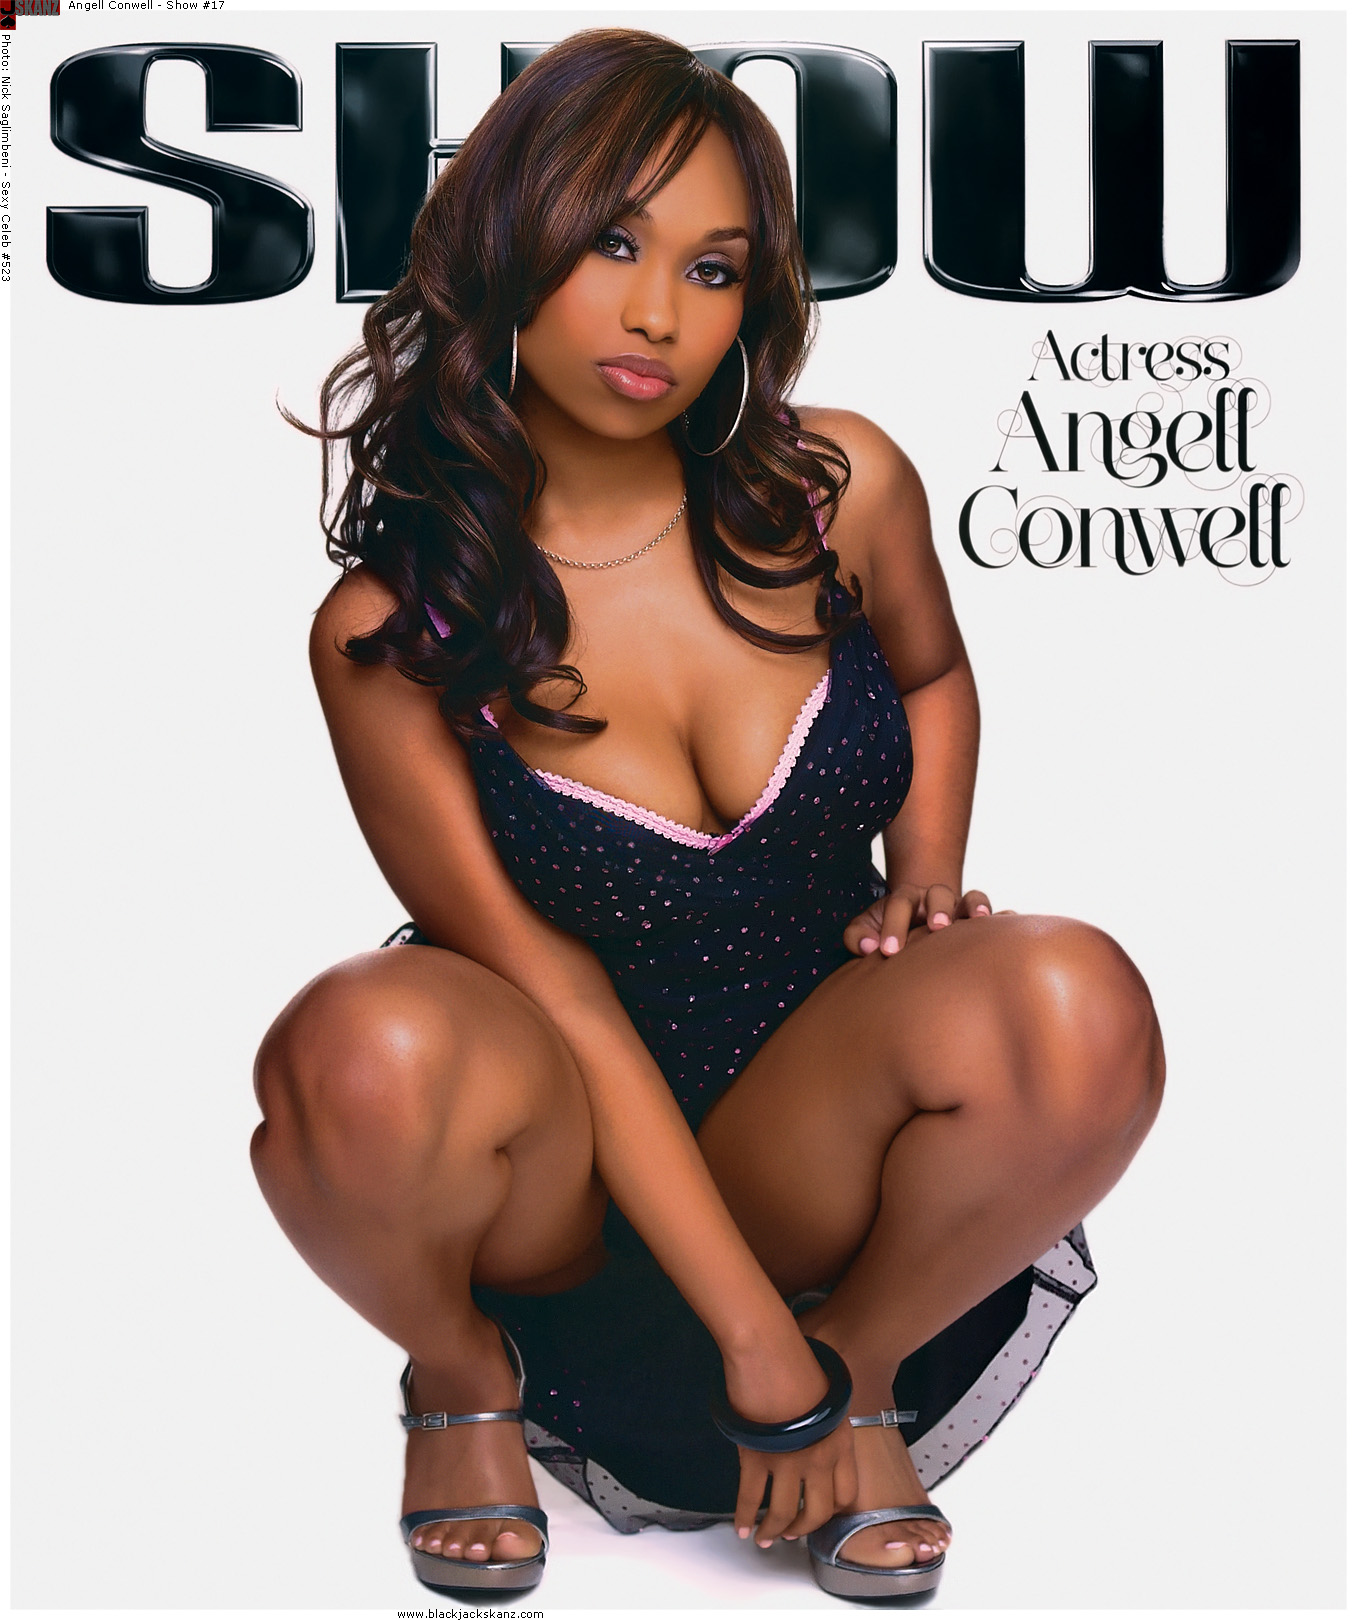 Angell conwell nude hot porn